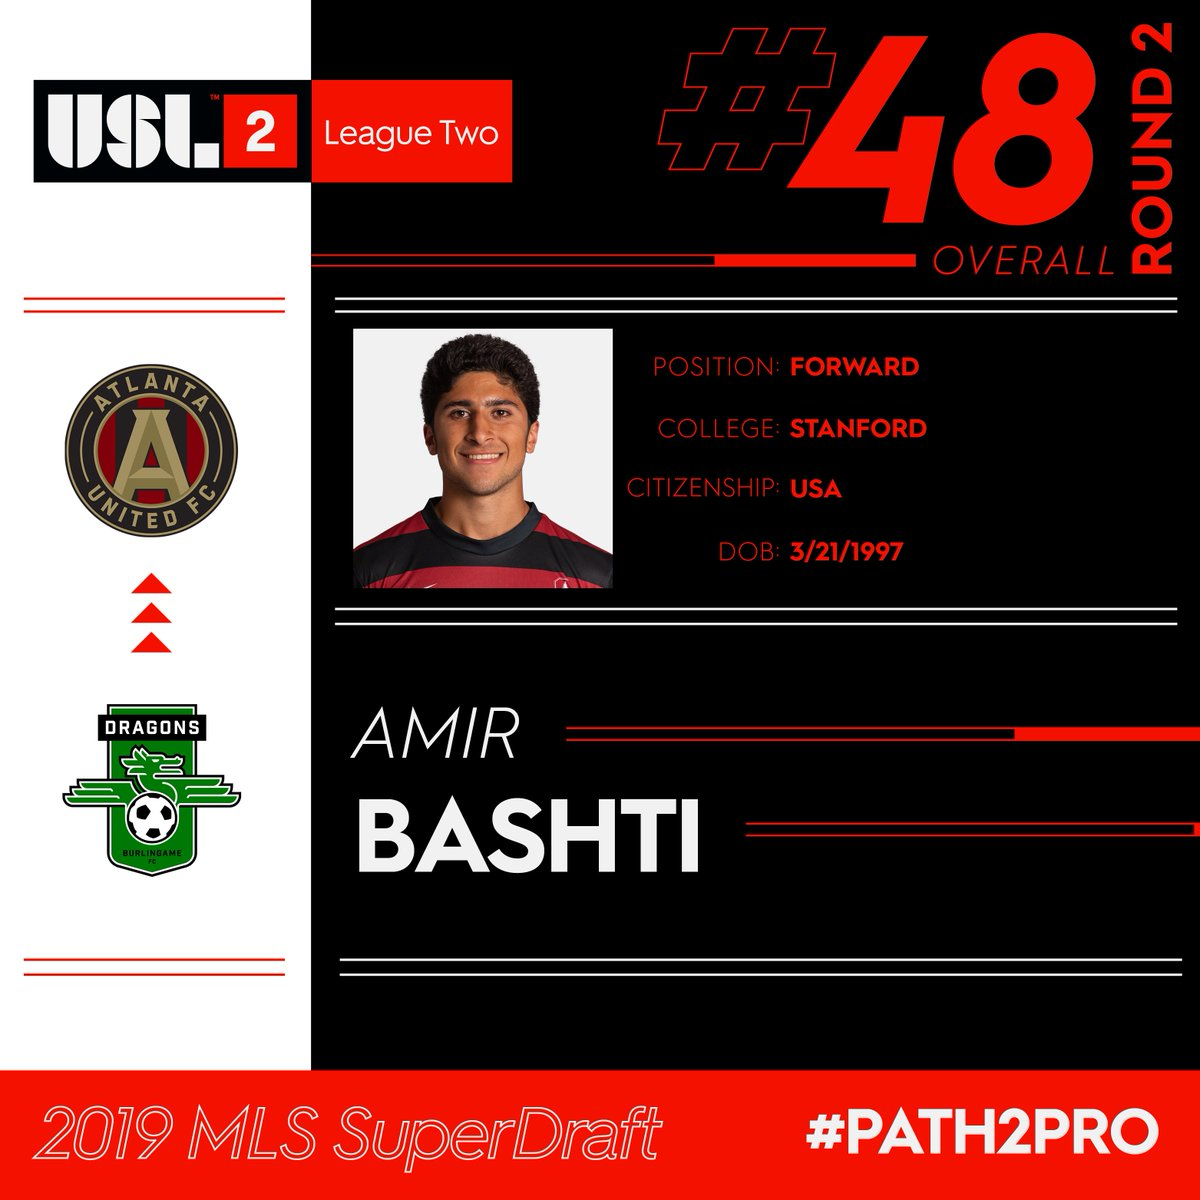 USL League Two's photo on Amir Bashti